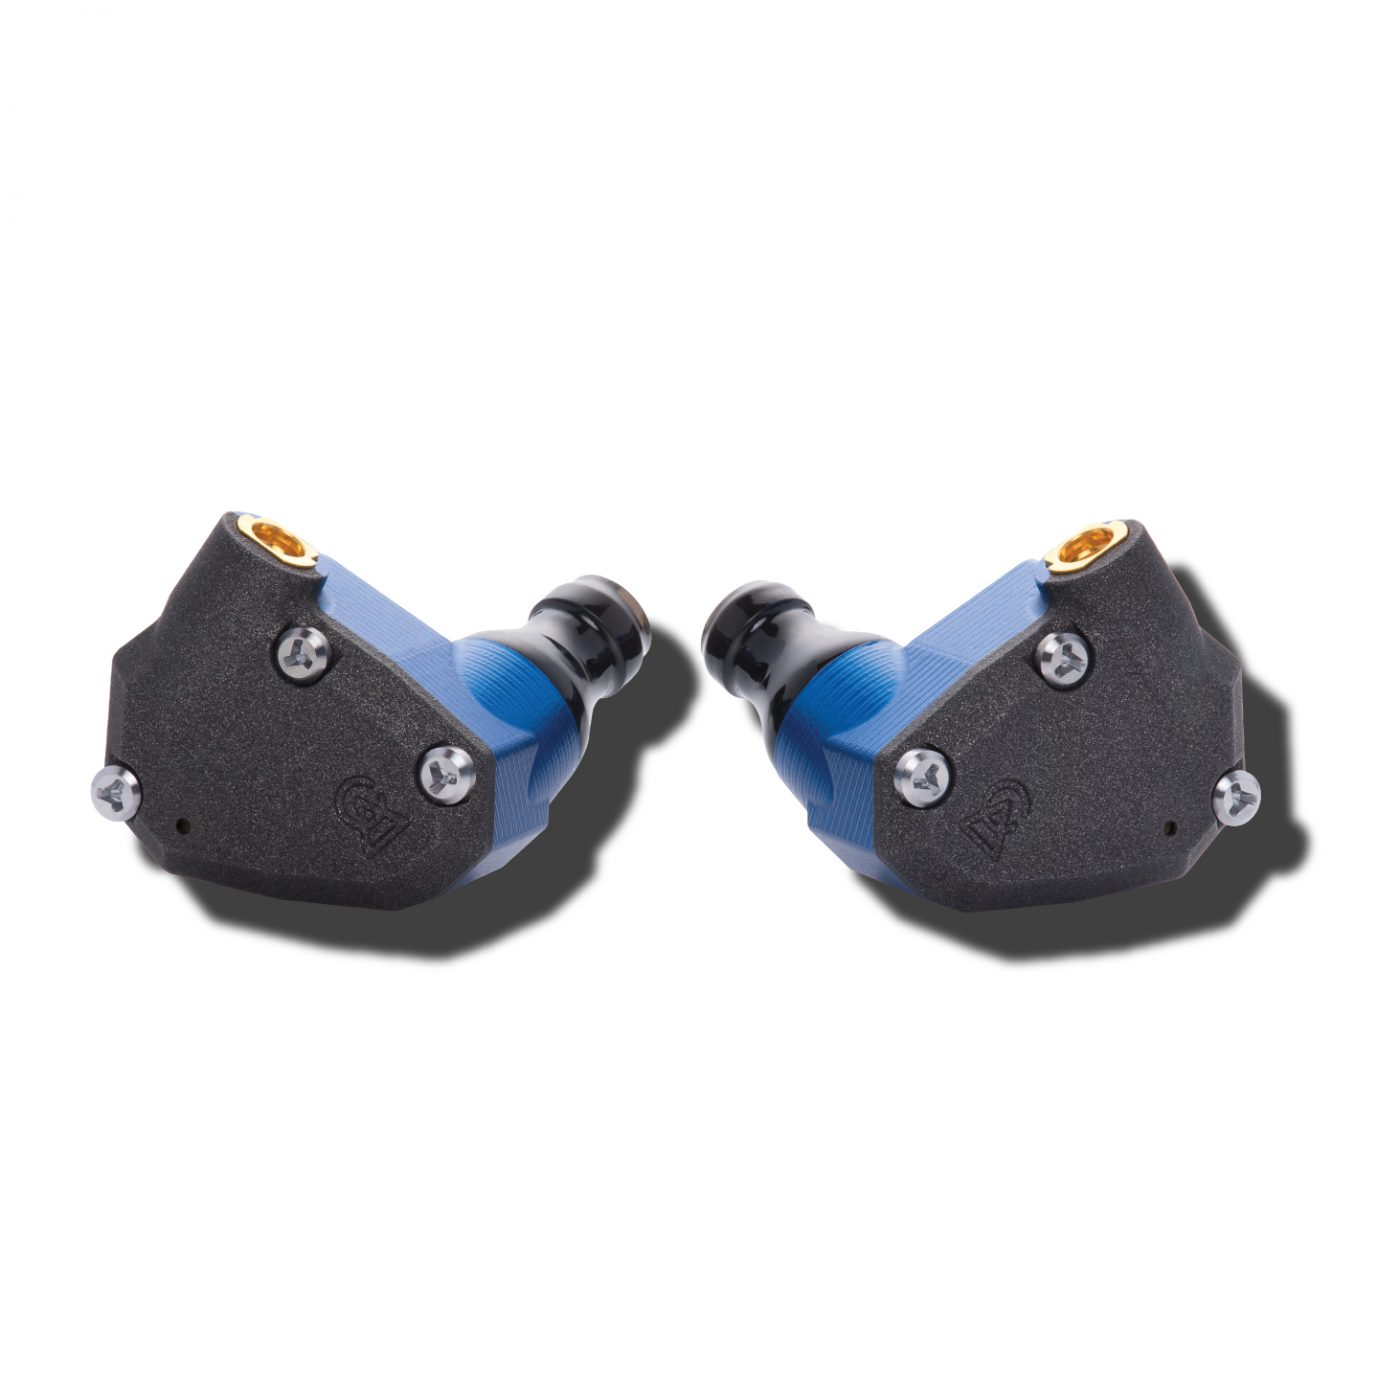 Polaris by Campfire Audio